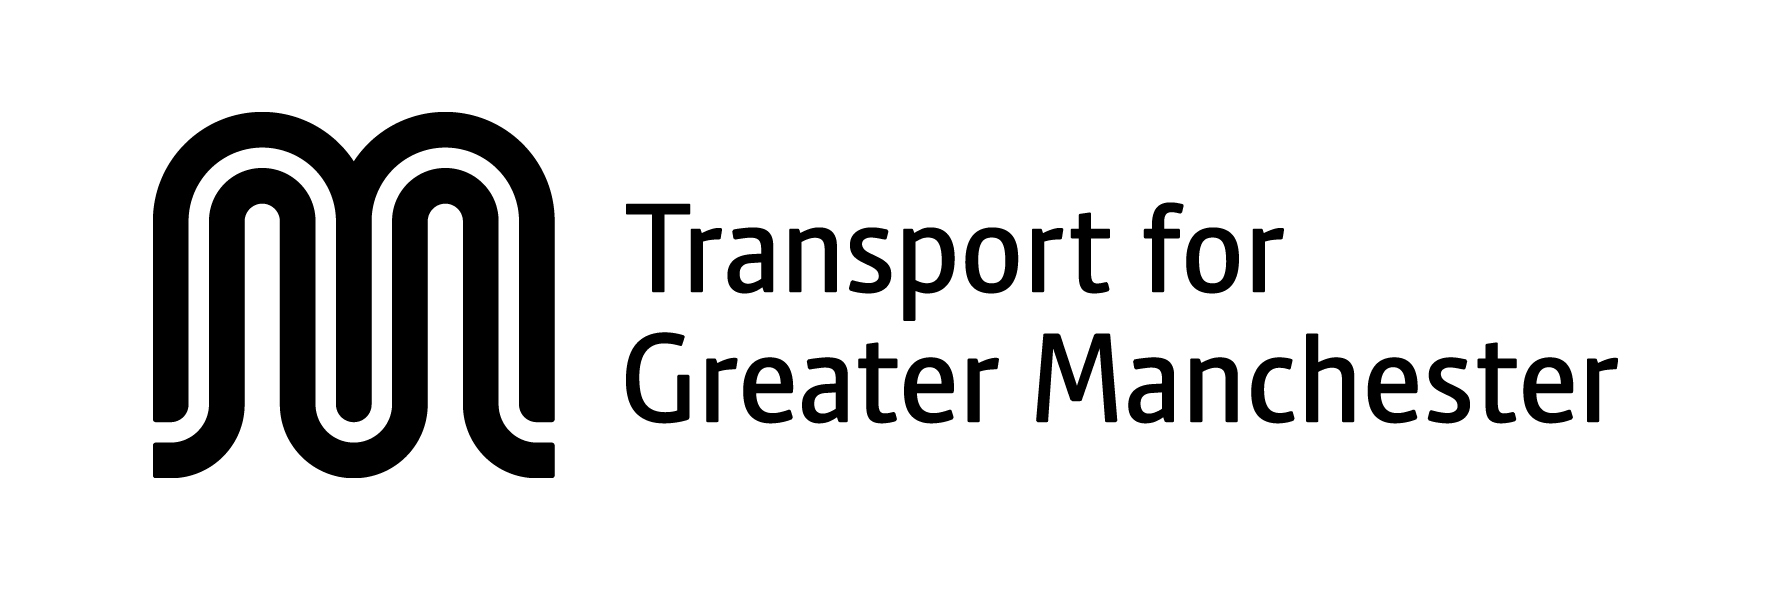 New LowCVP Members: Transport for Greater Manchester